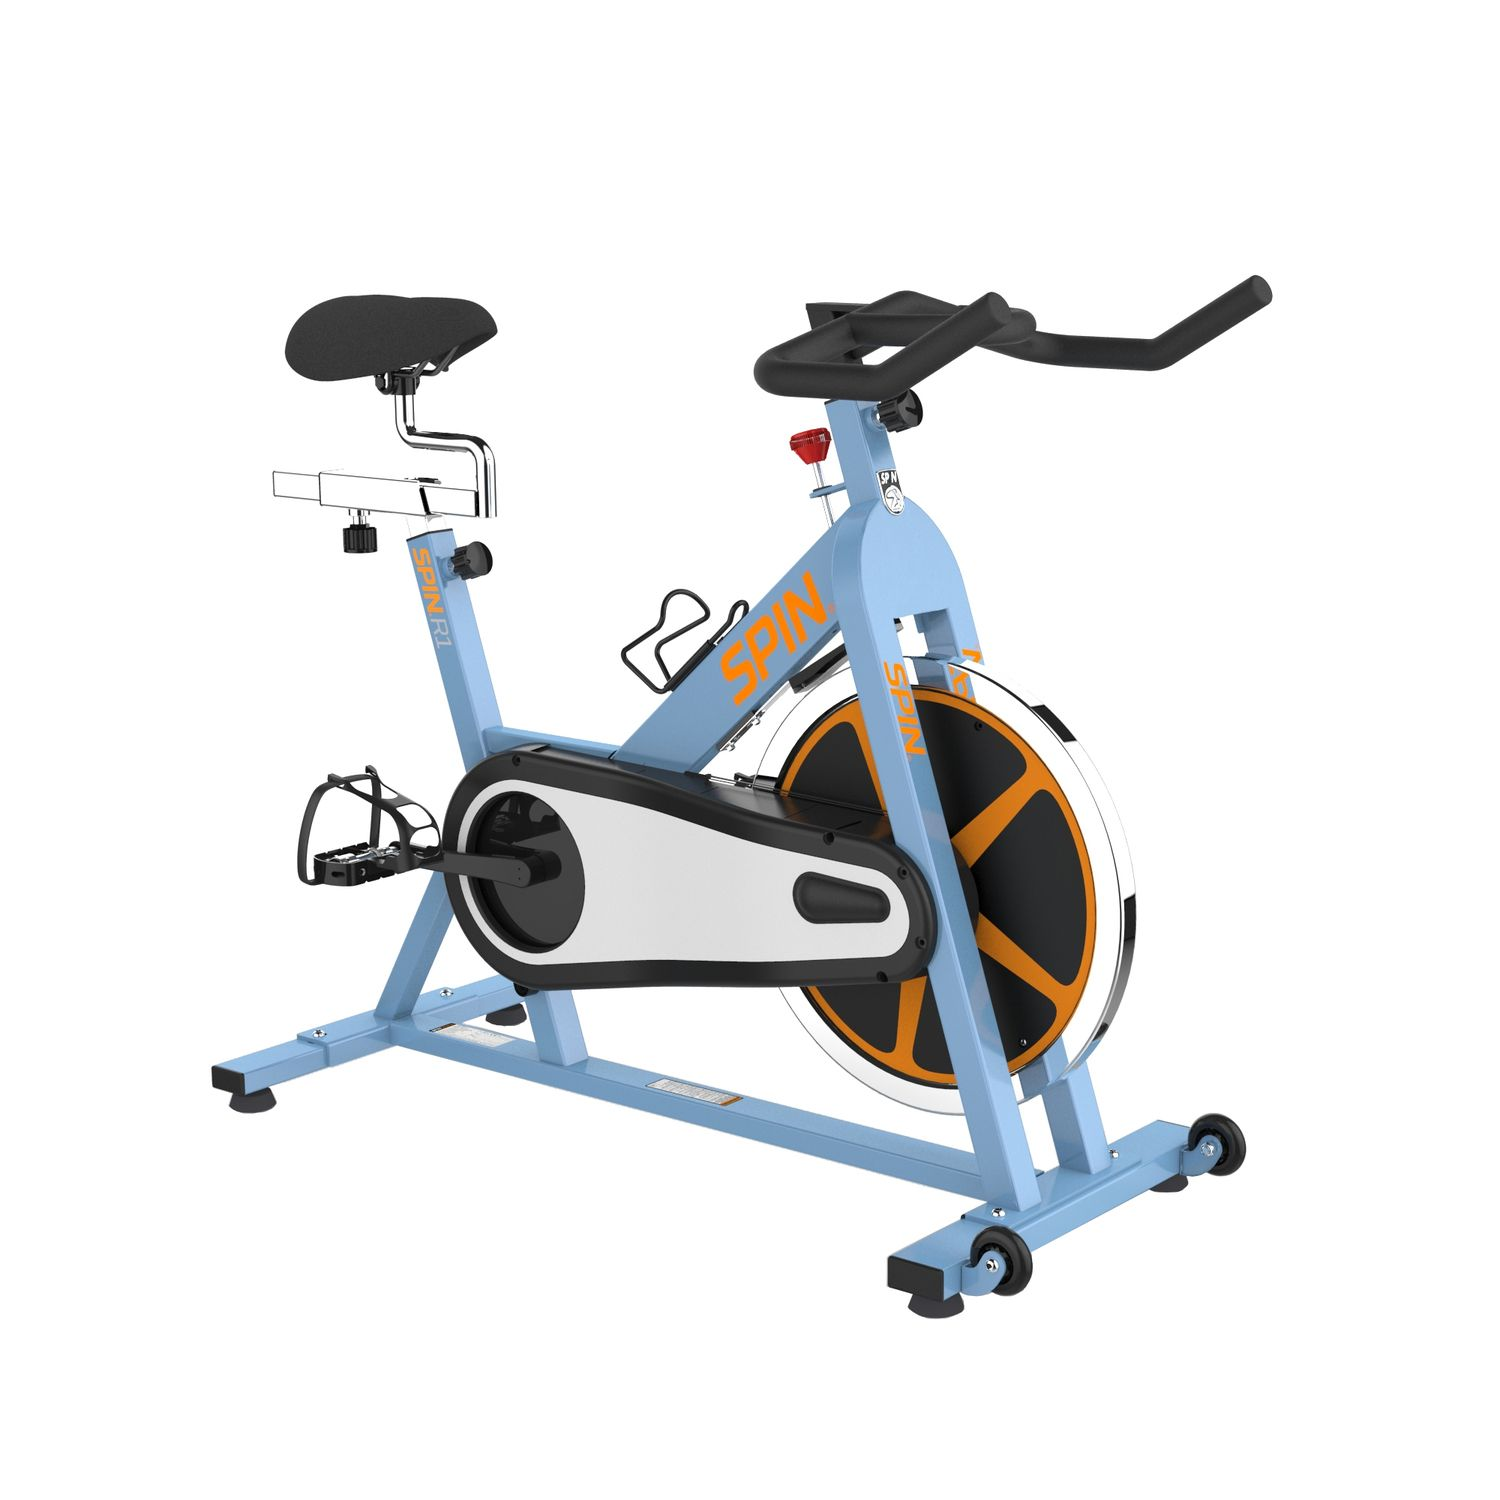 Spin R1 Indoor Cycling Bike Exercise Bike For The Cycling Enthusiast Buy Now To Purchase Indoor Cycling Bike Indoor Cycling Spin Bikes